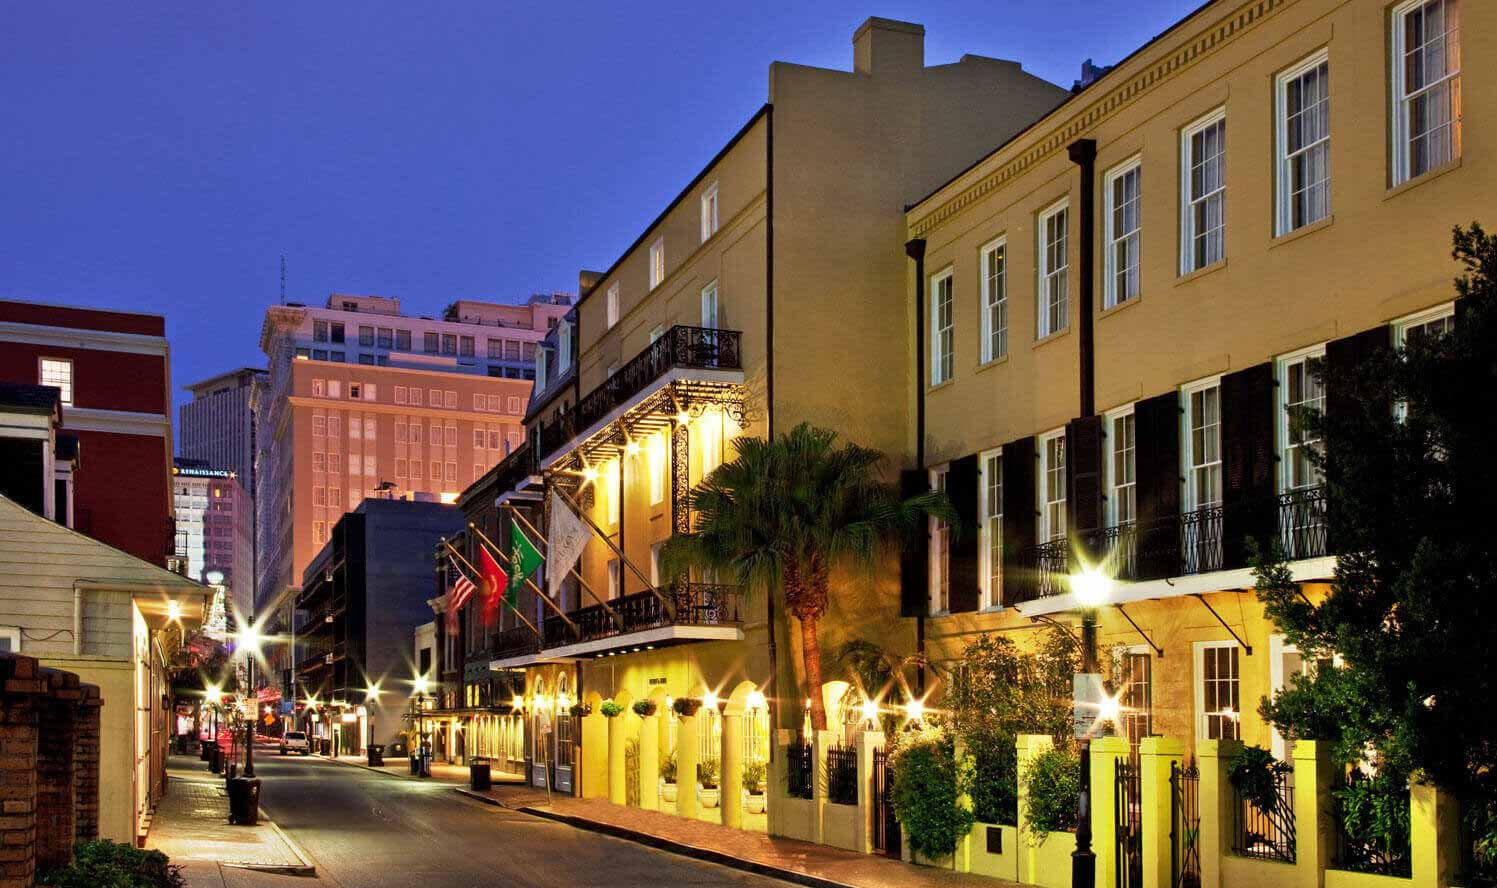 Chateau LeMoyne French Quarter, A Holiday Inn Hotel